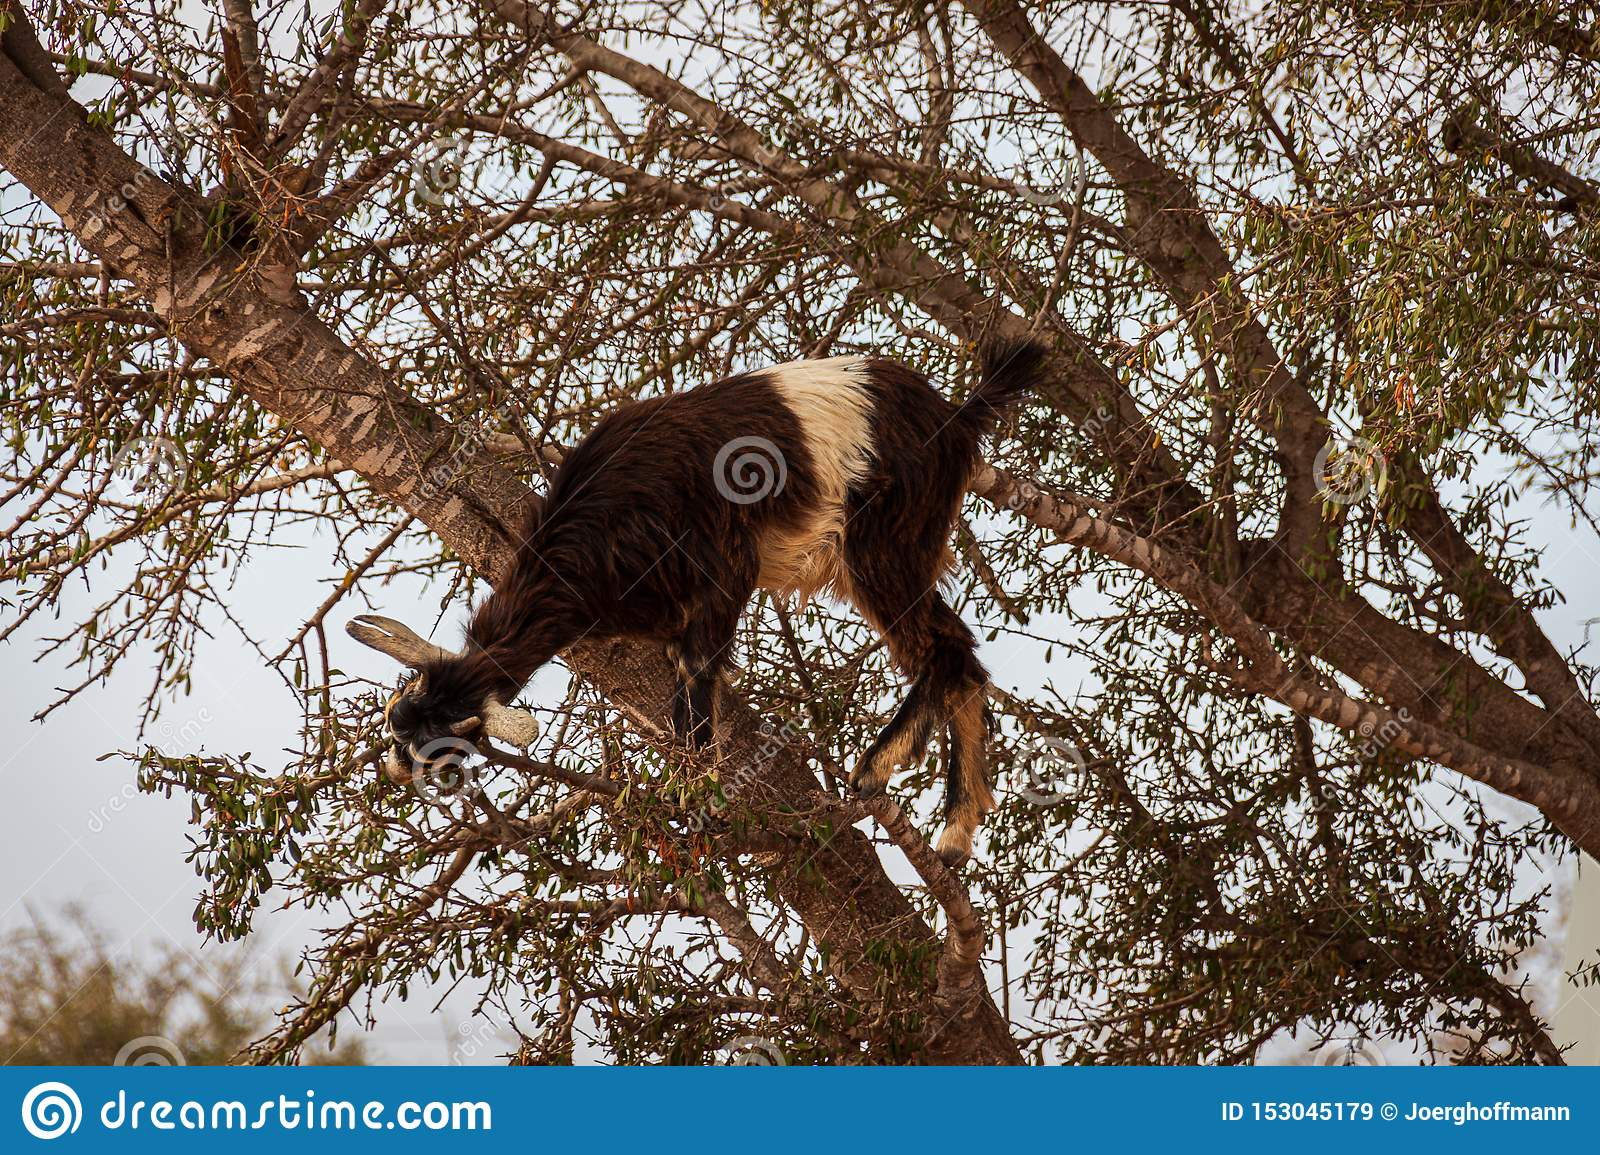 Goat in an argan tree feeding its fruits